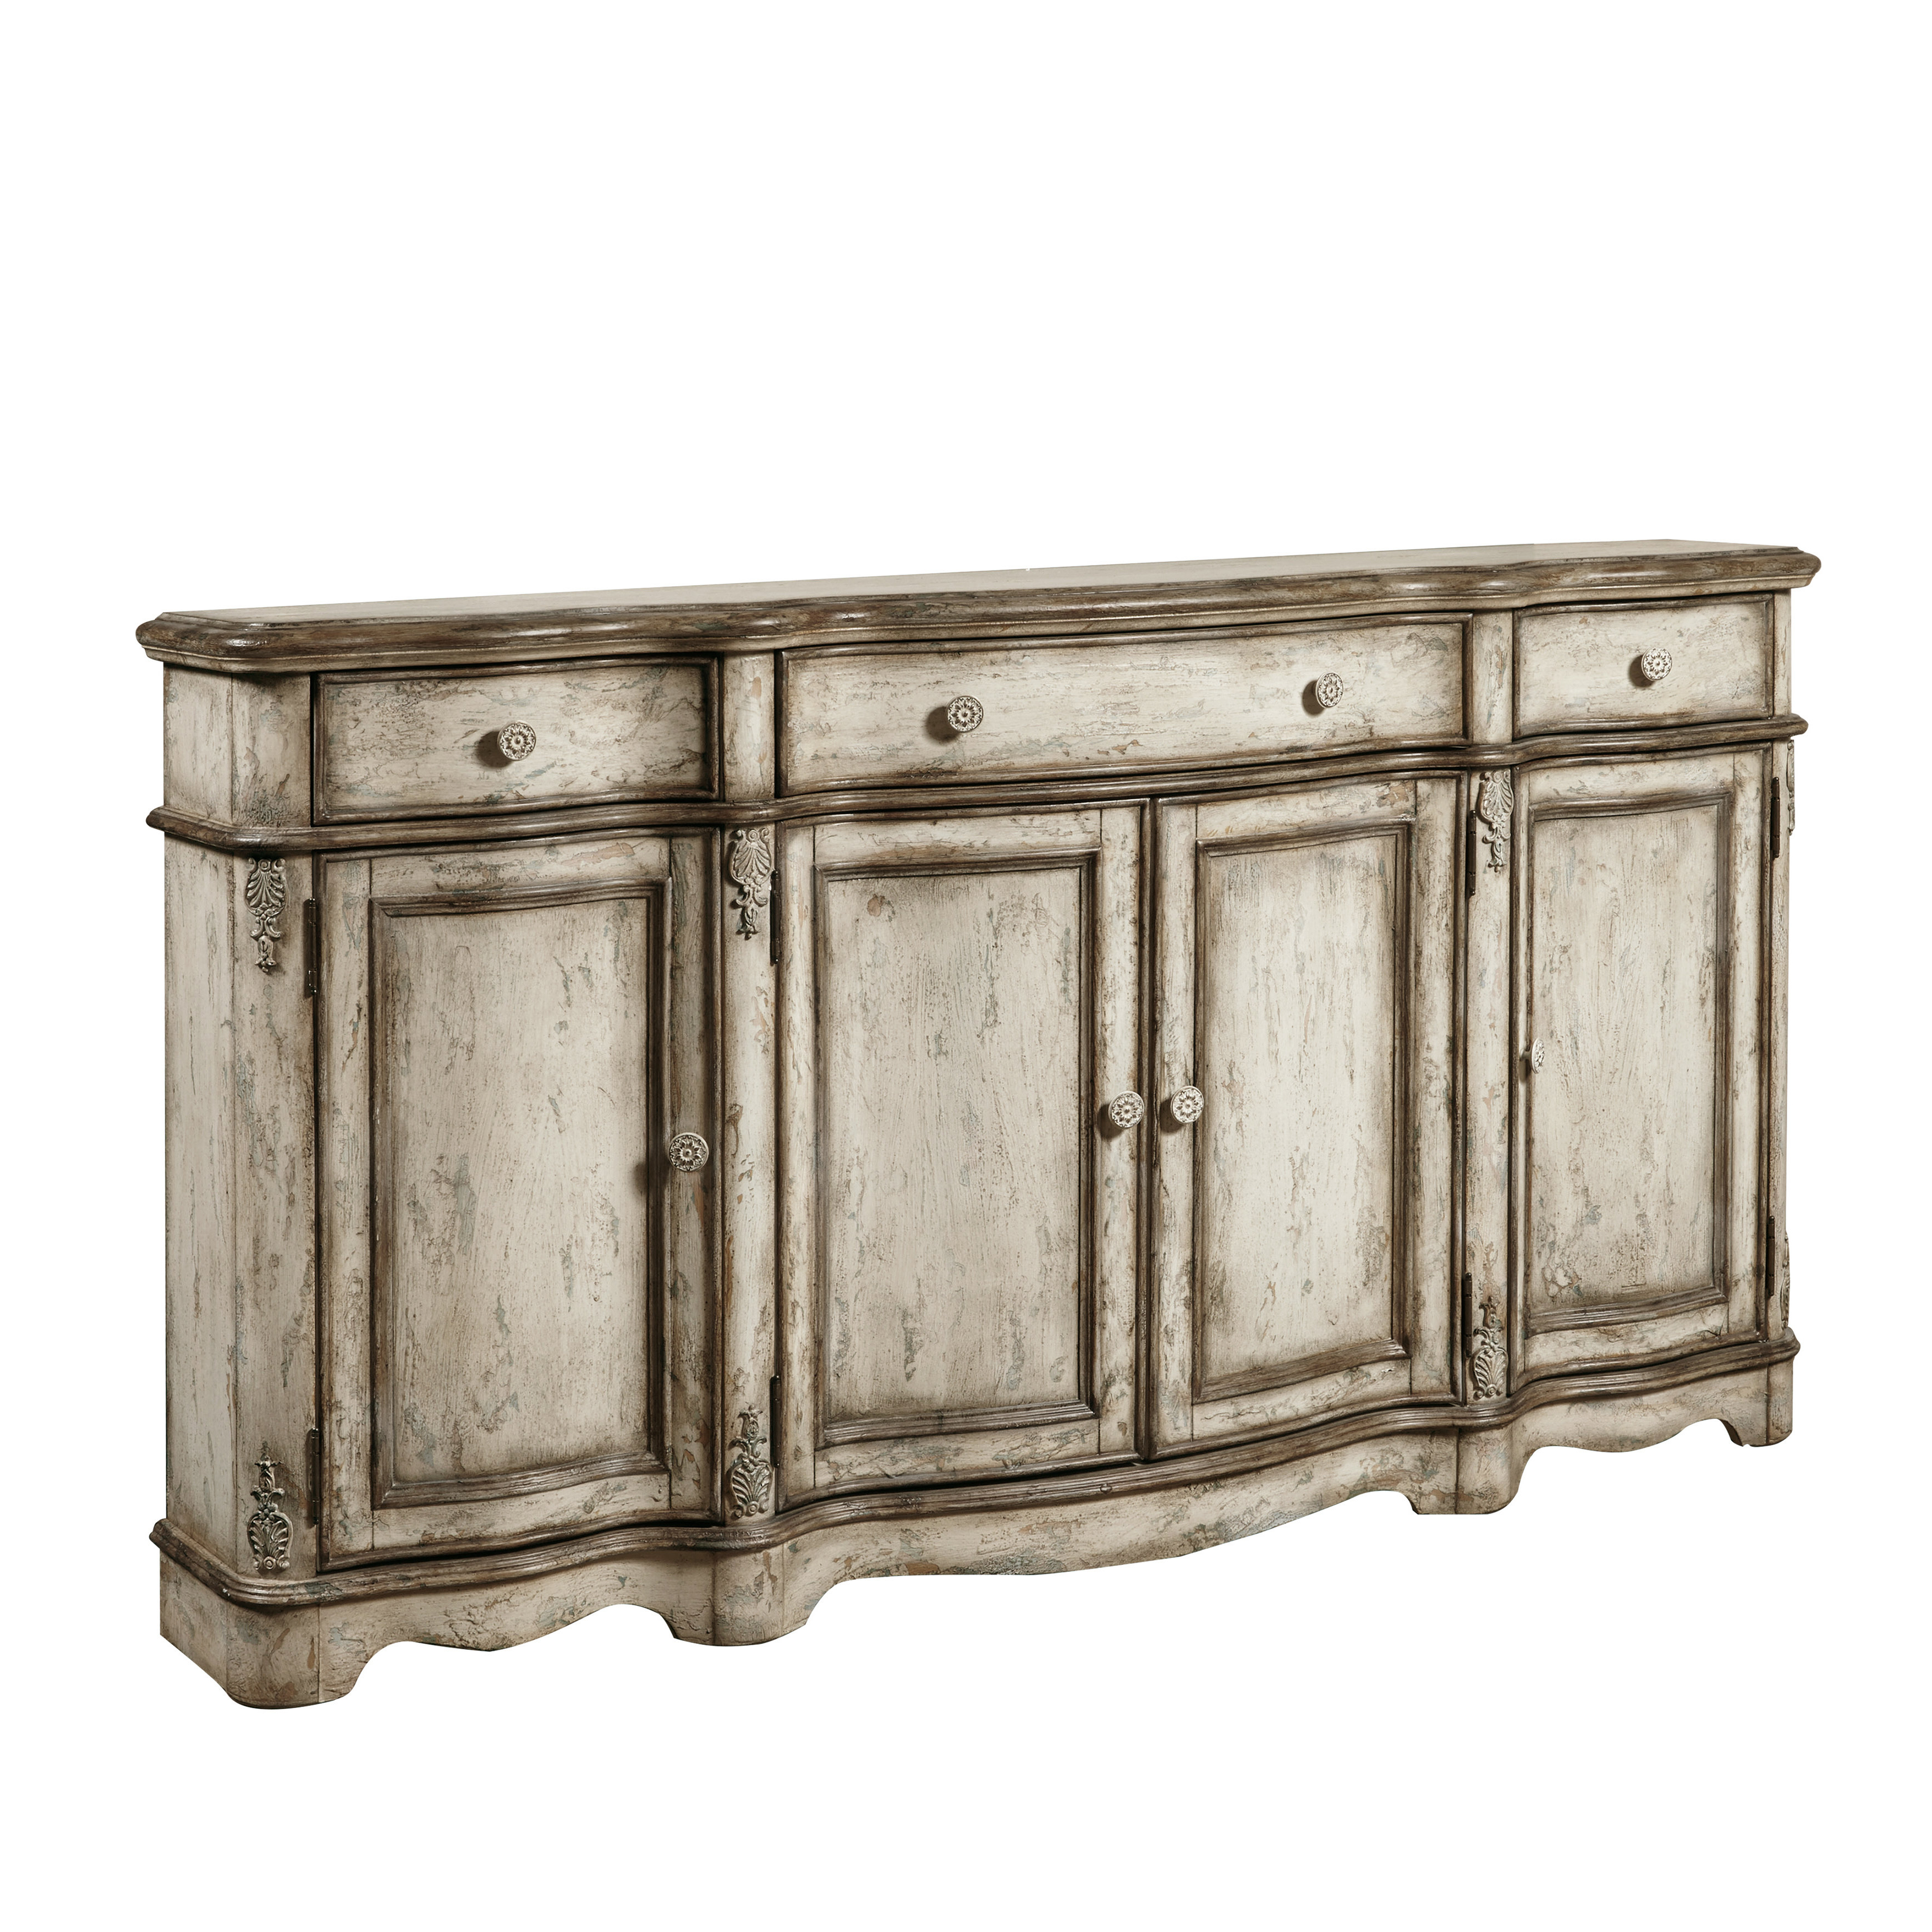 Farmhouse & Rustic Sideboards & Buffets   Birch Lane For Amityville Wood Sideboards (View 17 of 20)